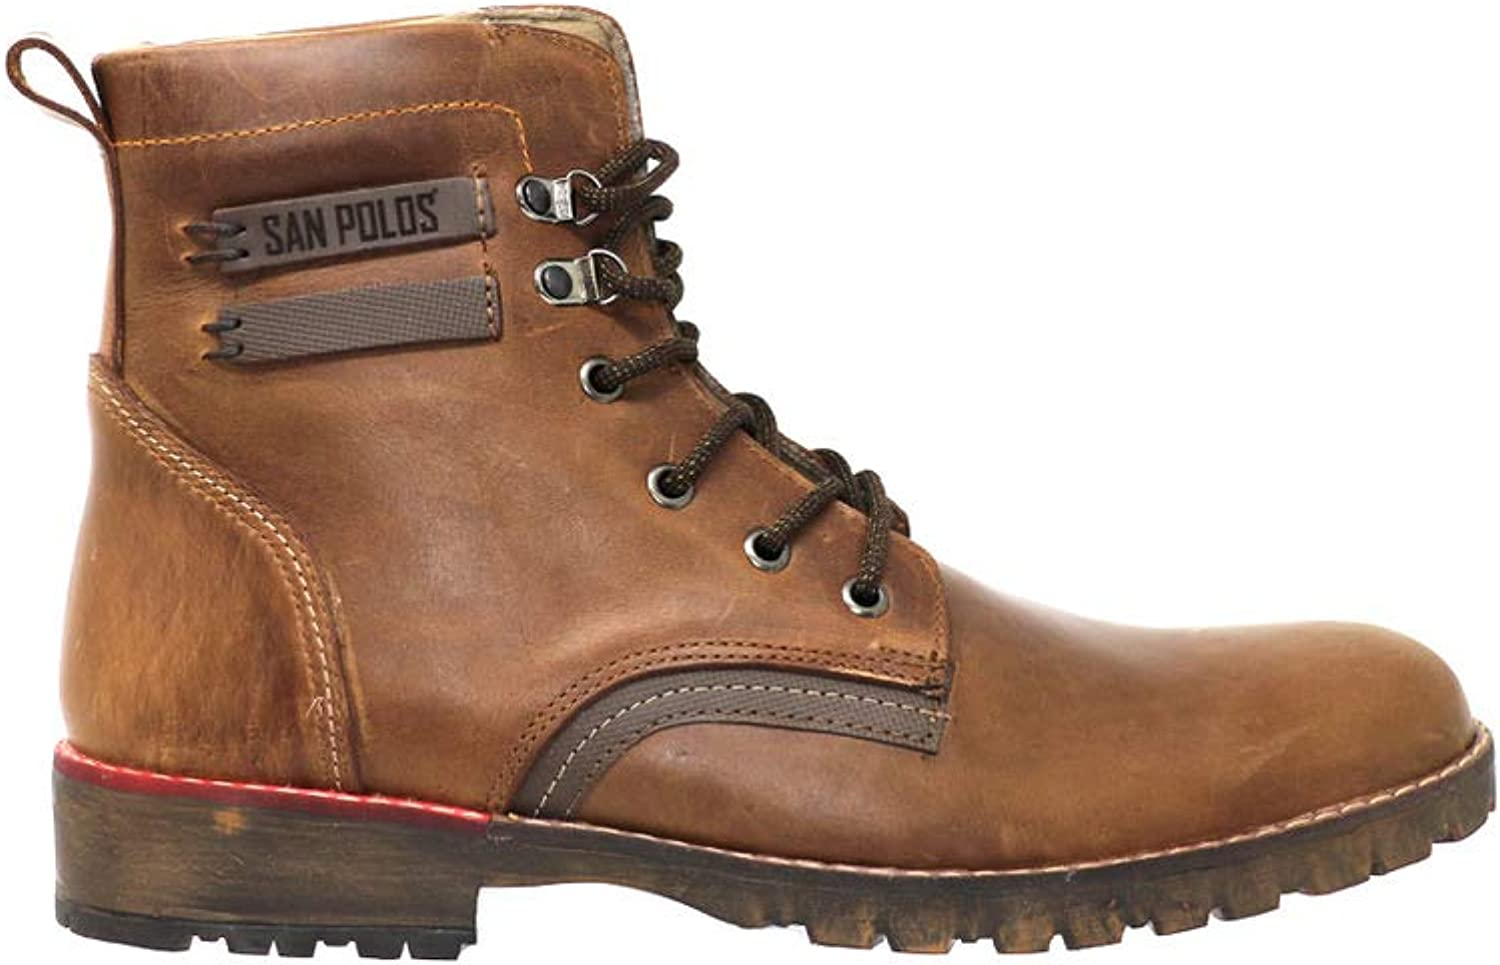 San Polo Six Inch Leather Workboots (Coffee Brown) Mens, Handcrafted, Full Grain Leather, Lace Up, Rounded Toe, Thick Sole, Casual, Modern Style.